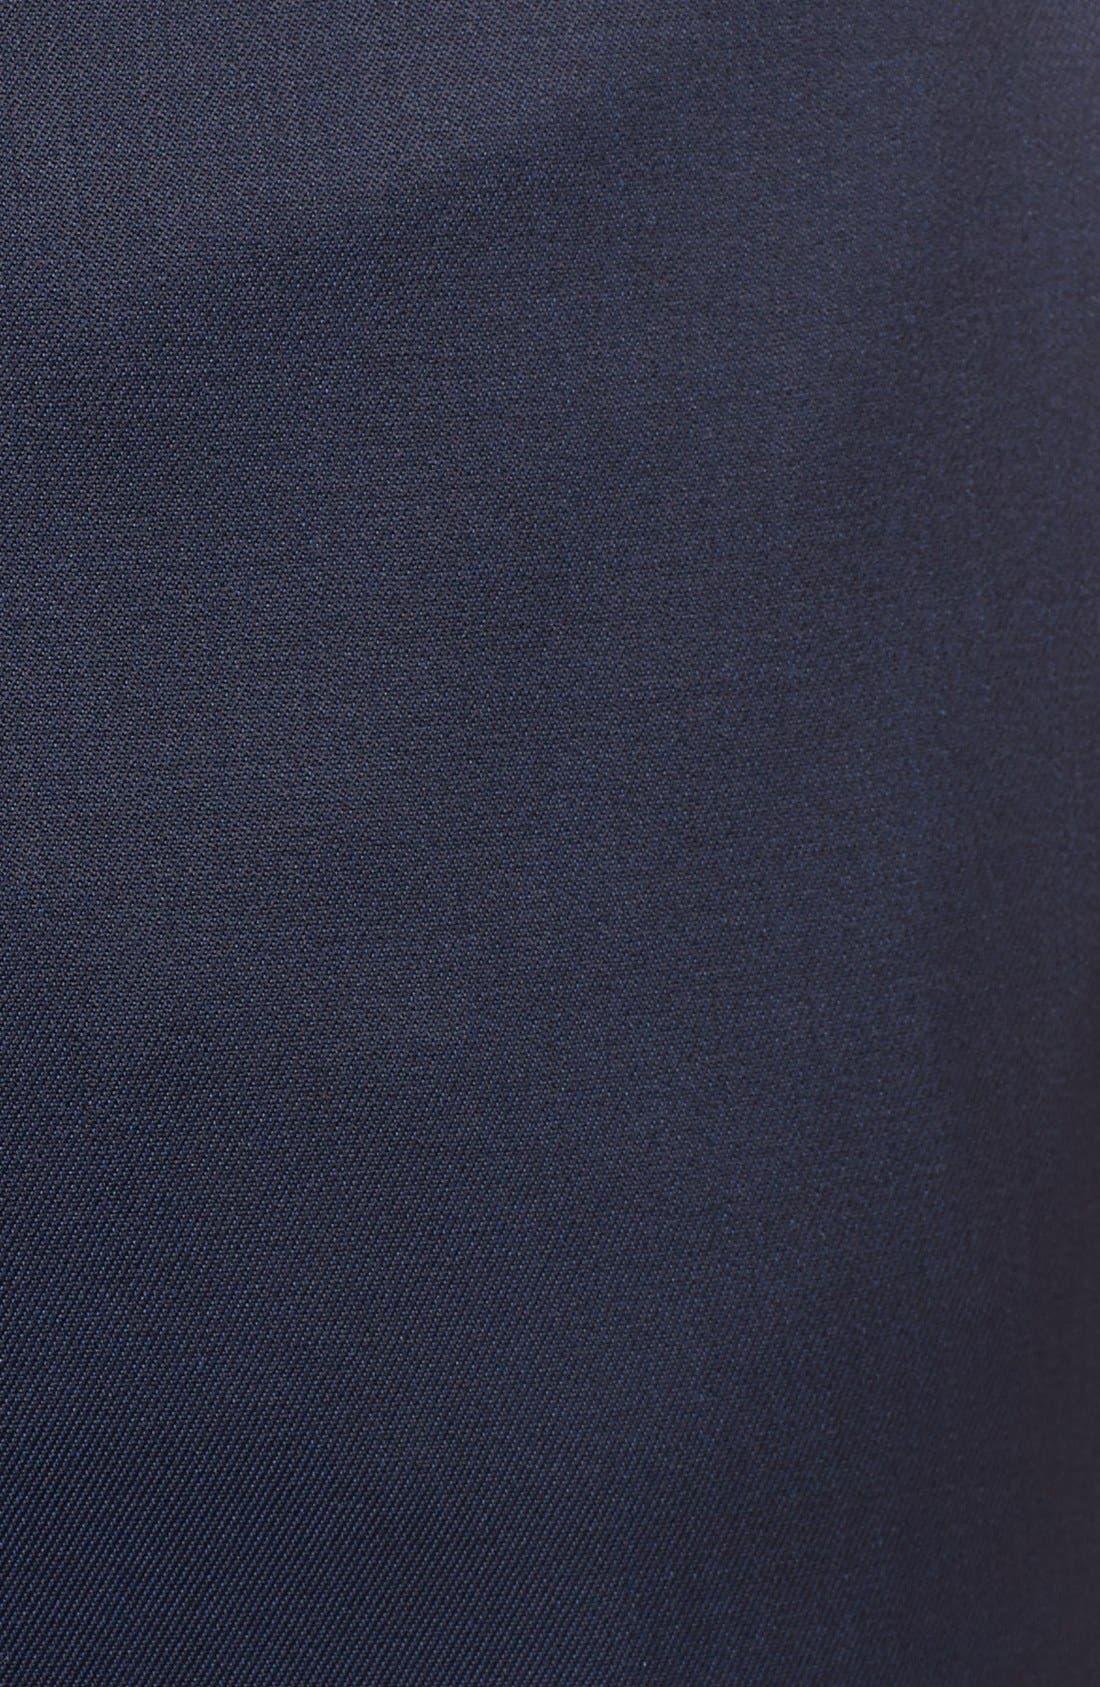 'Pashion' Flat Front Wool & Mohair Trousers,                             Alternate thumbnail 3, color,                             410